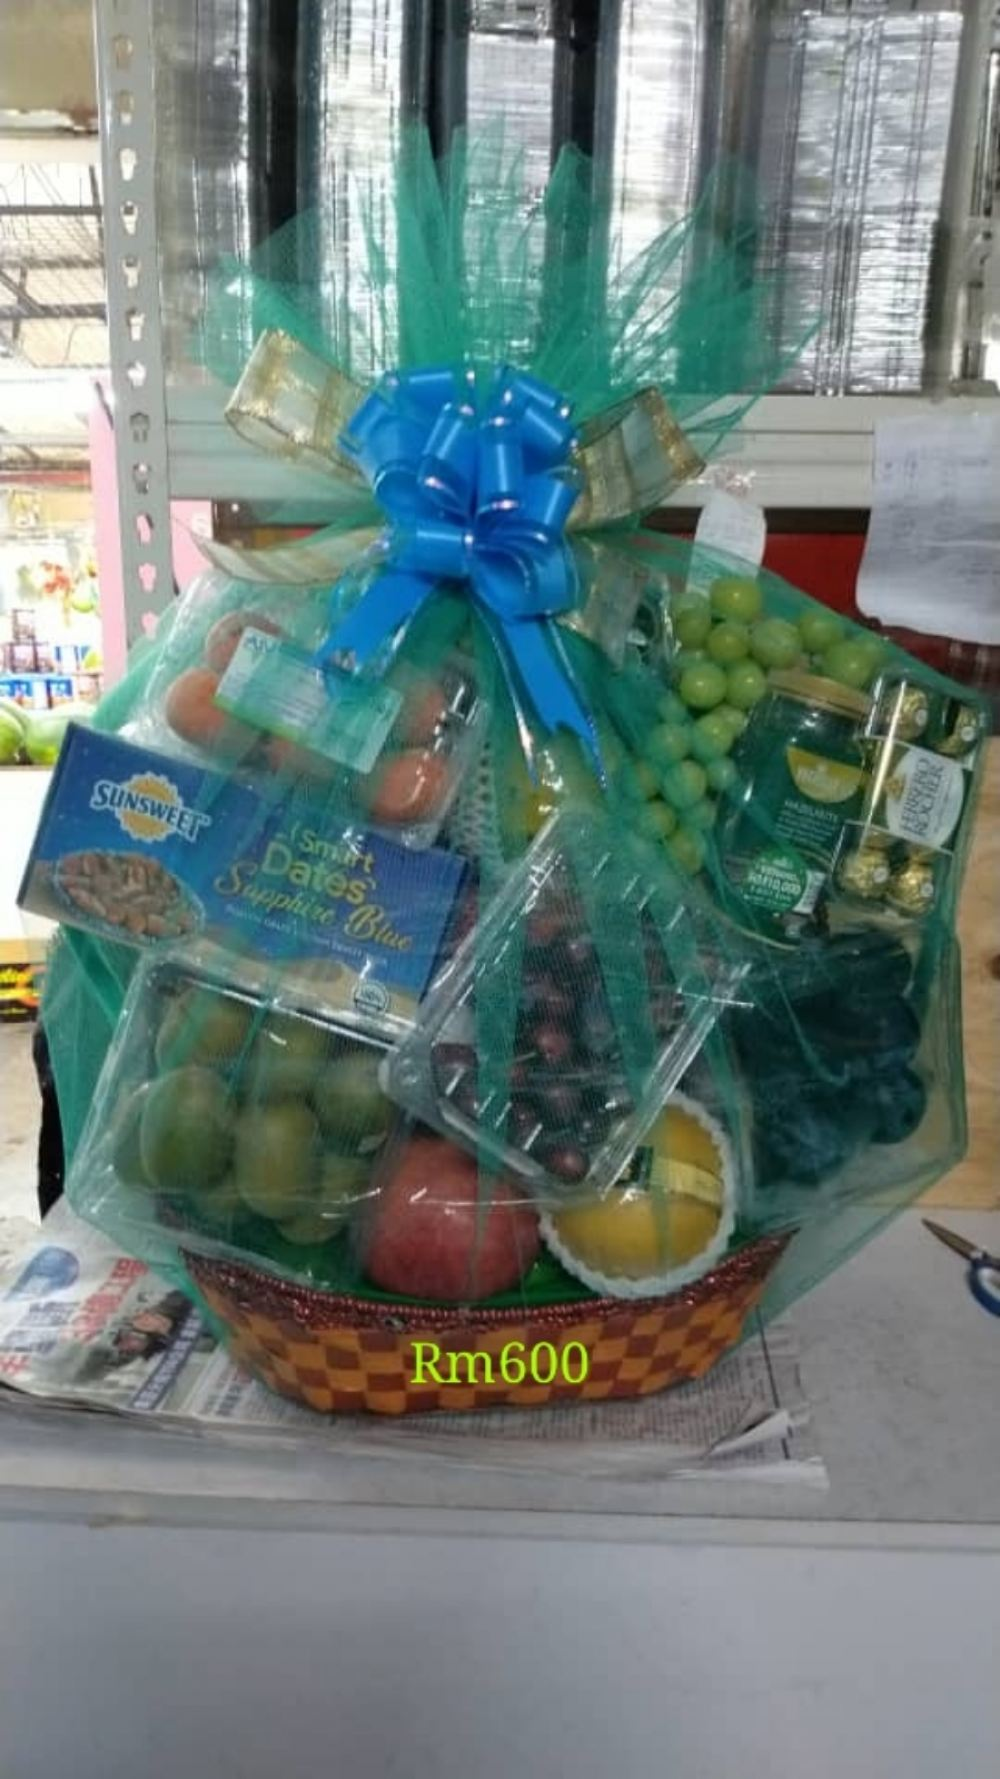 Fruit hamper Rm600(not including the snacks, customer bring it come)(only for delivery local)